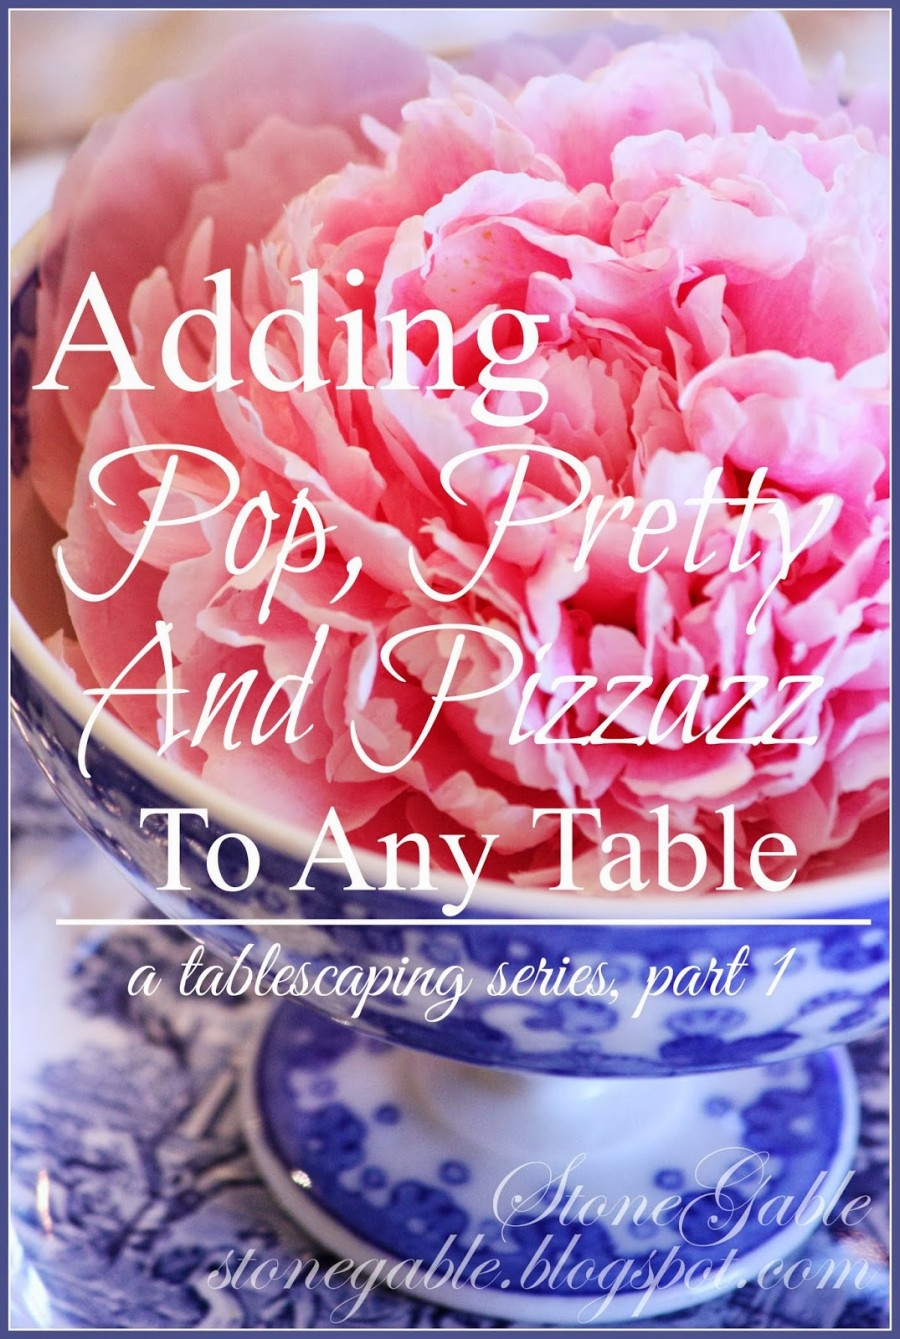 ADDING POP, PRETTY AND PIZZAZZ TO ANY TABLE, PART I